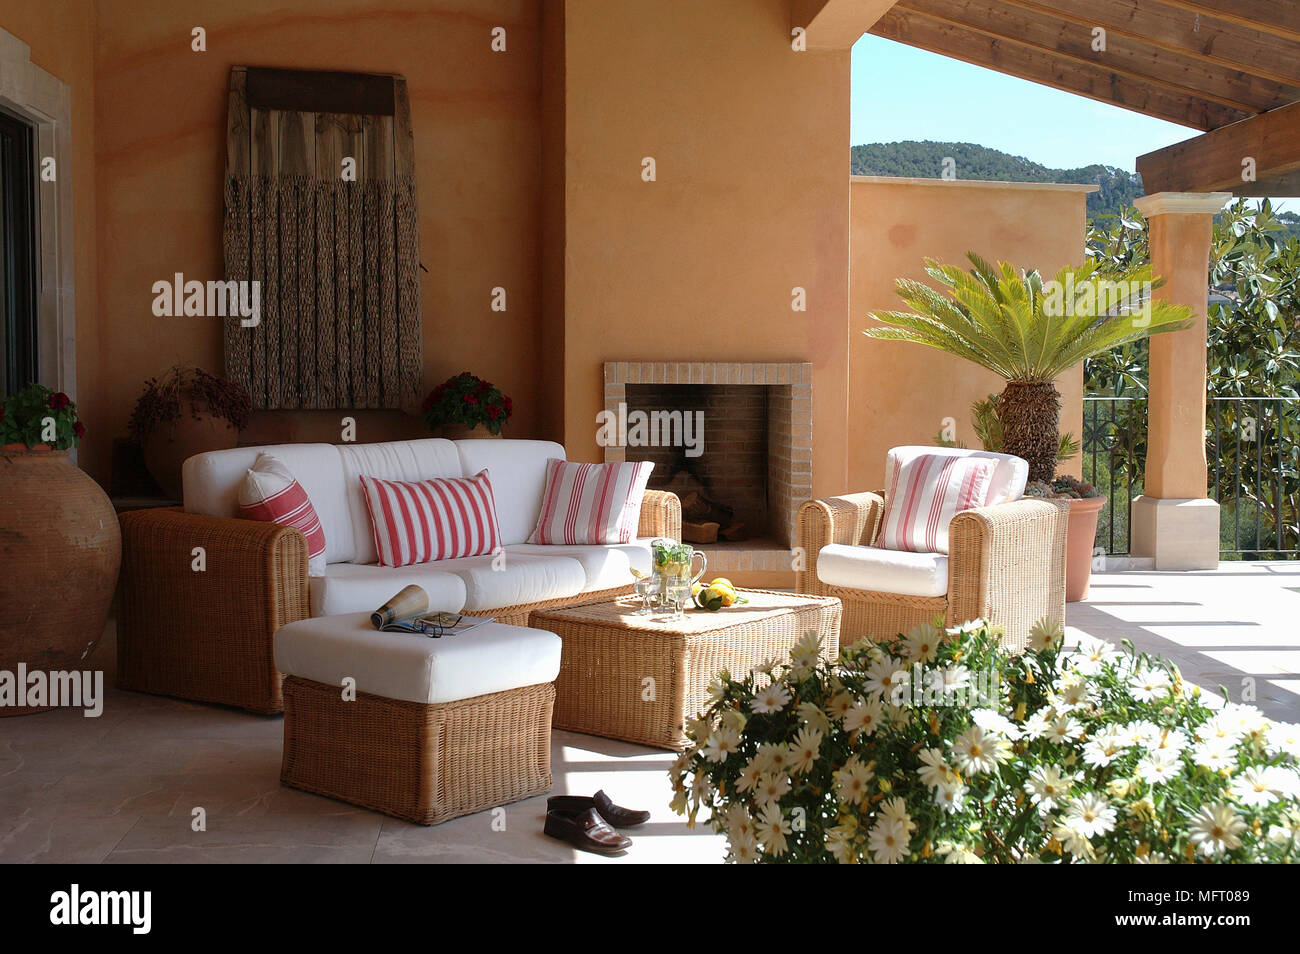 Wicker Furniture On Covered Patio Terrace With Fireplace Stock Photo Alamy